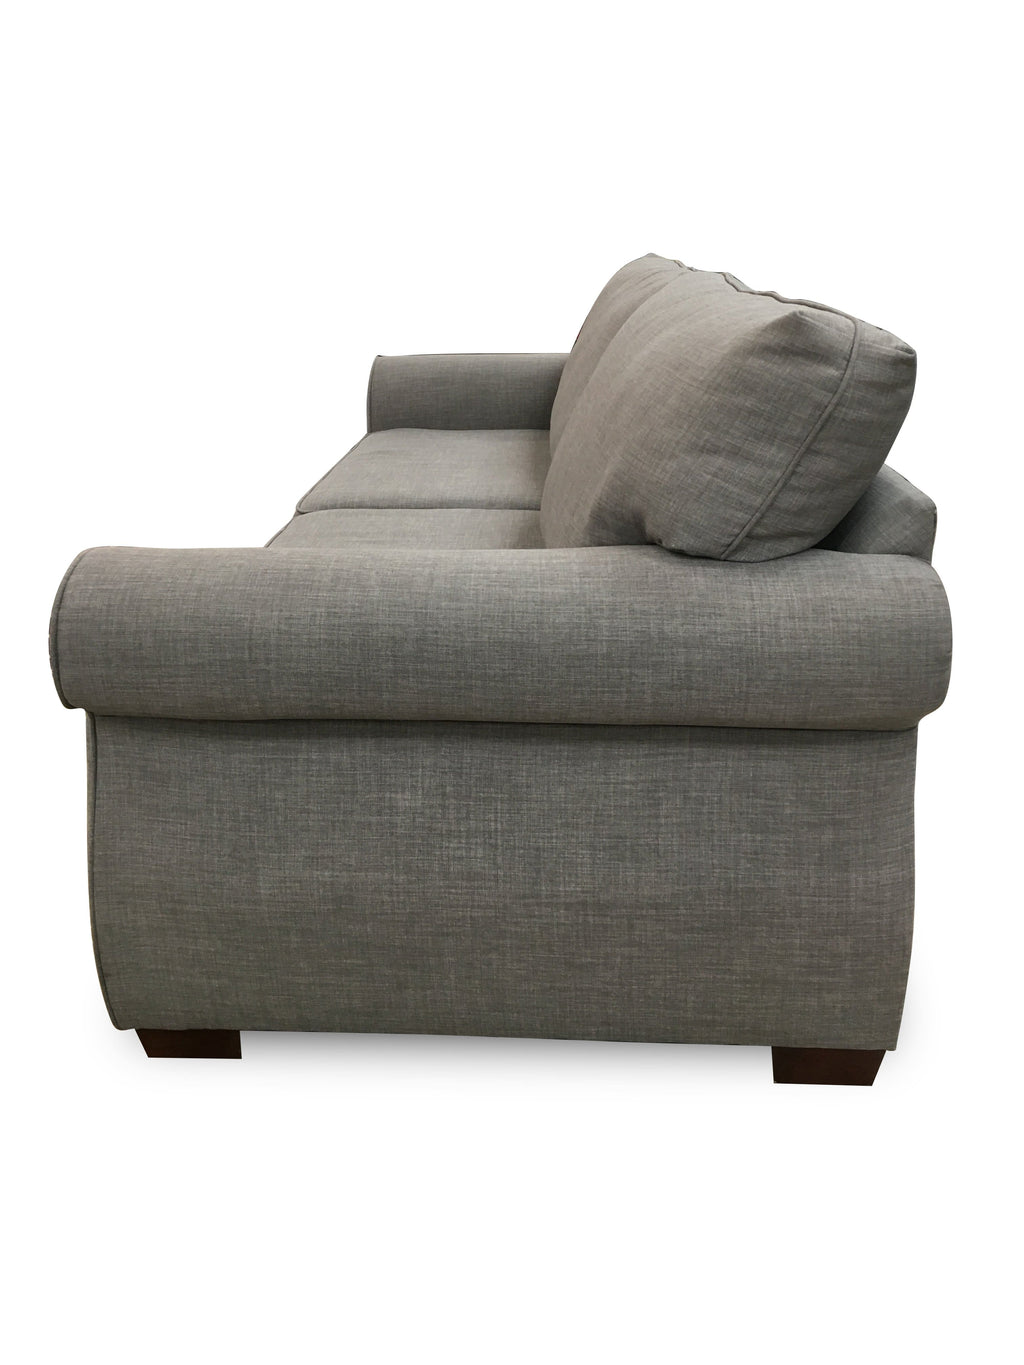 Fairoak Sofa - What A Room Furniture